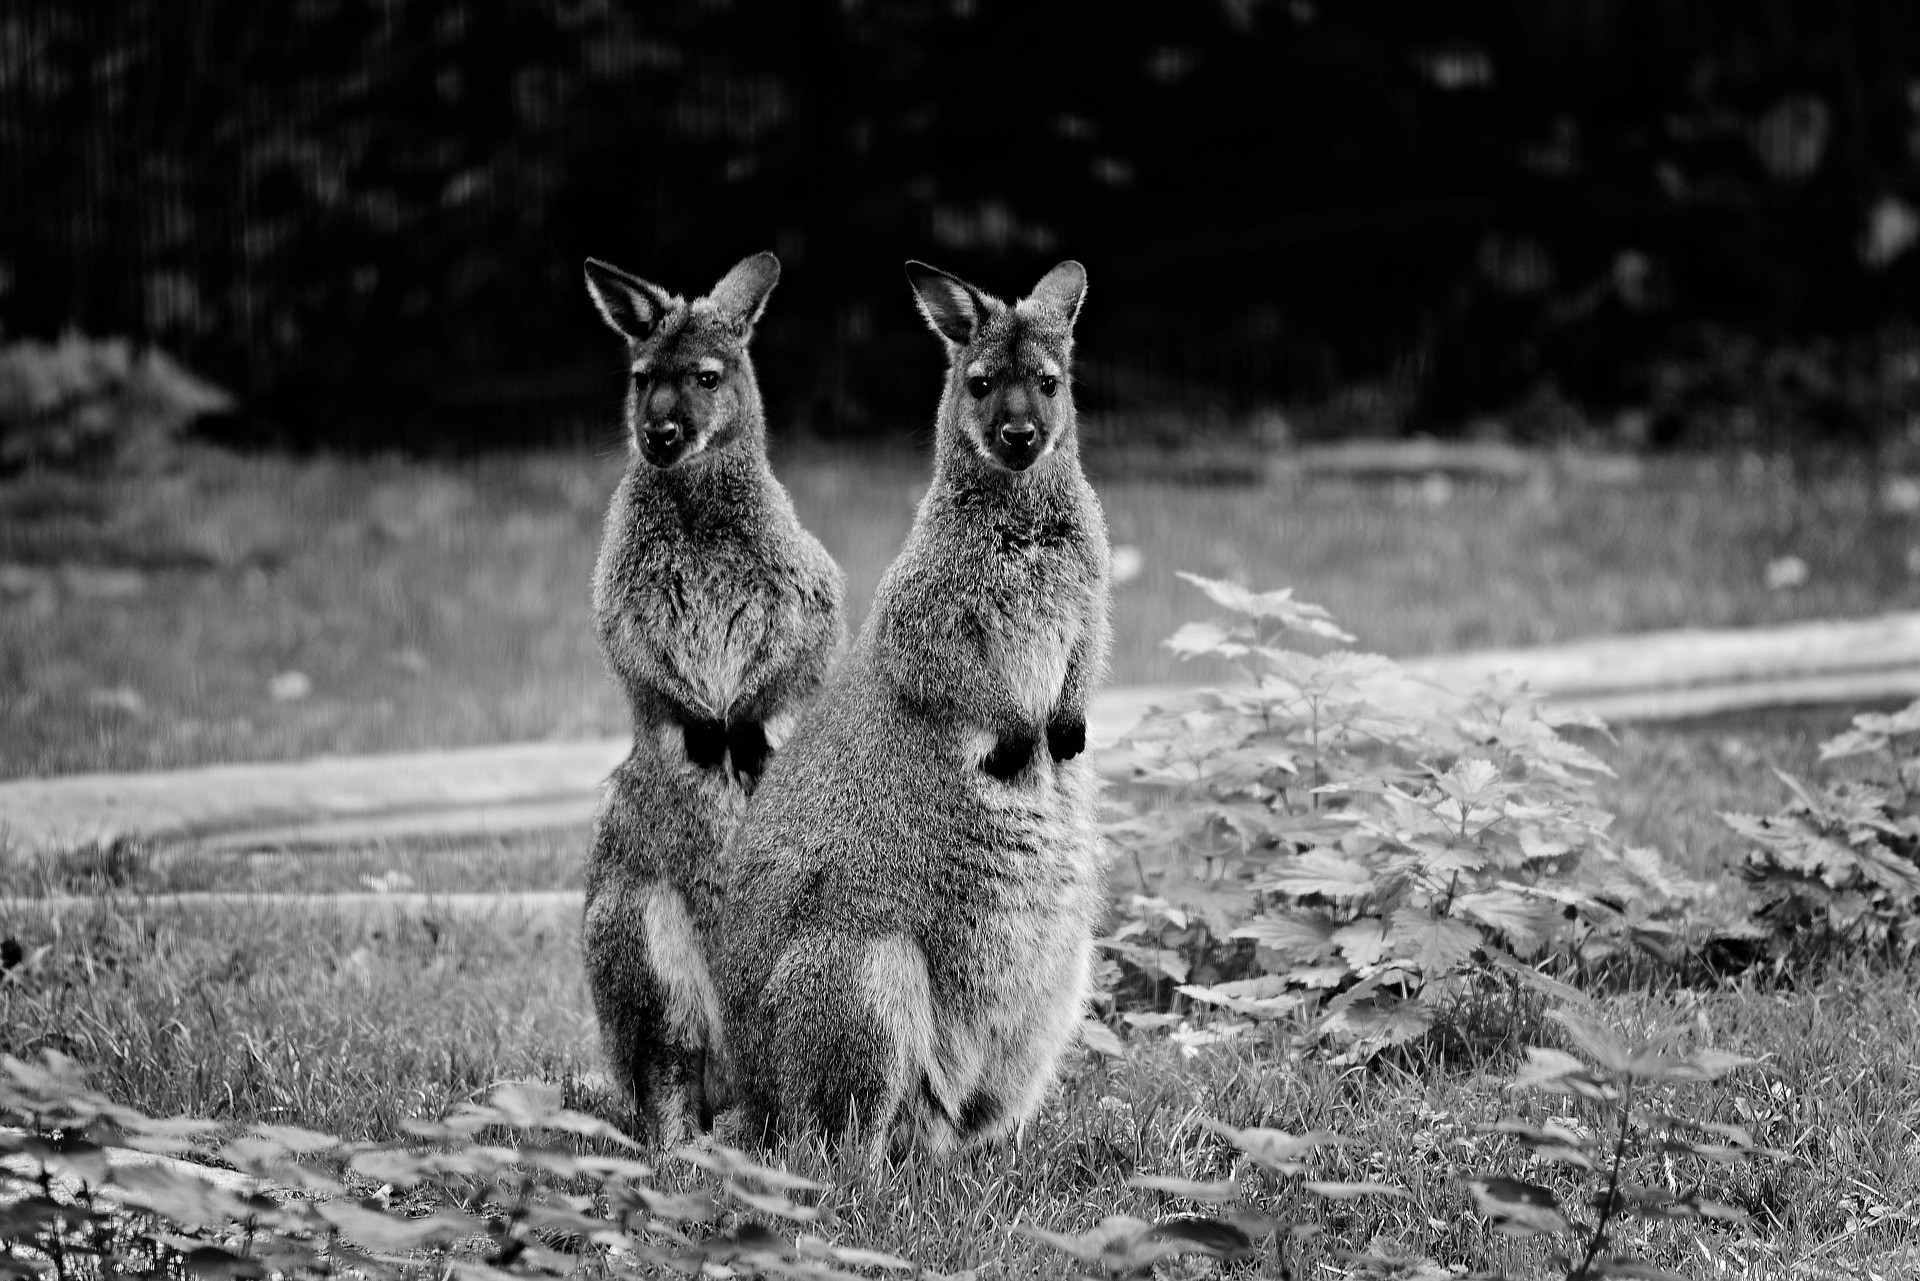 Image of two wallabies